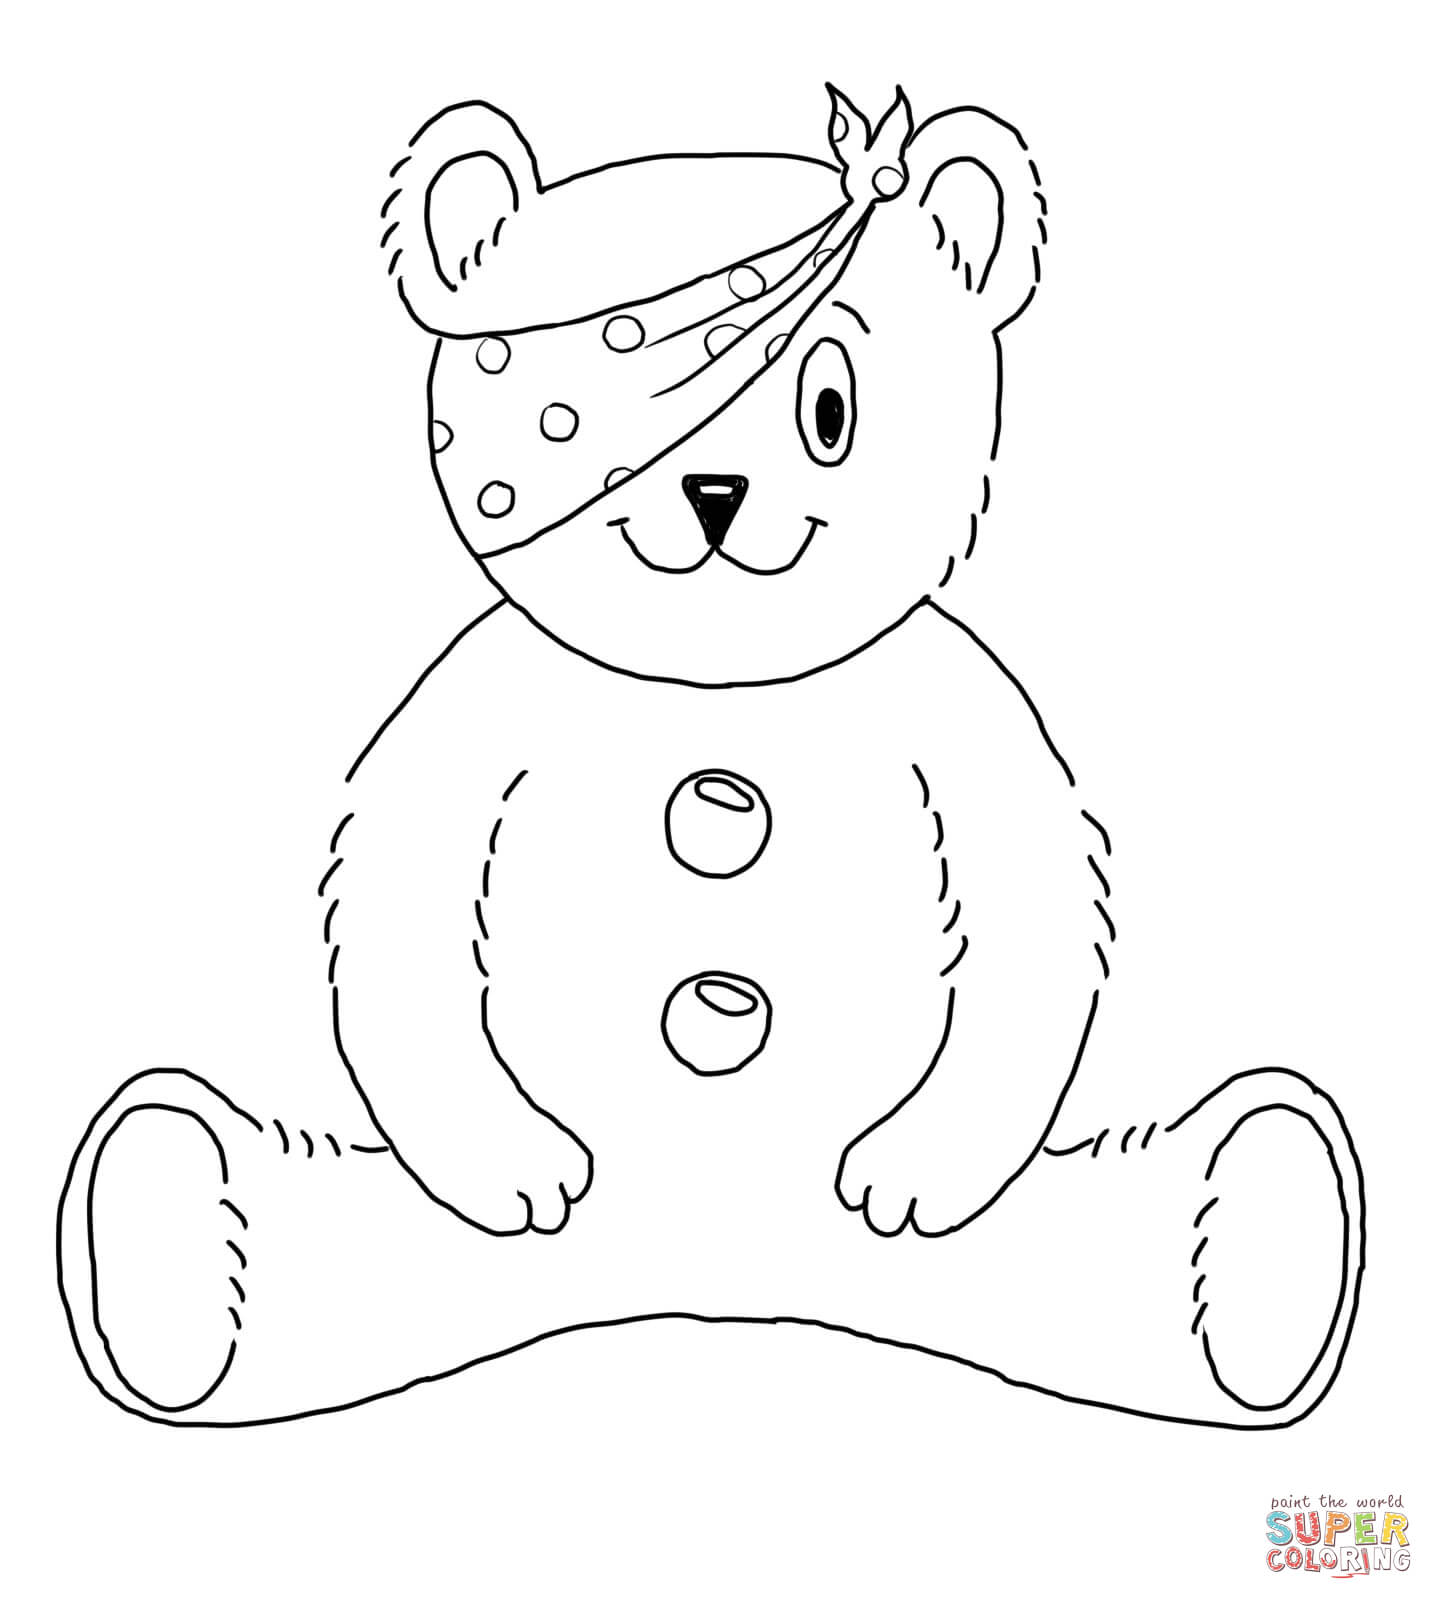 pudsey bear pictures to colour in dibujo de el oso pudsey para colorear dibujos para bear pudsey to pictures colour in